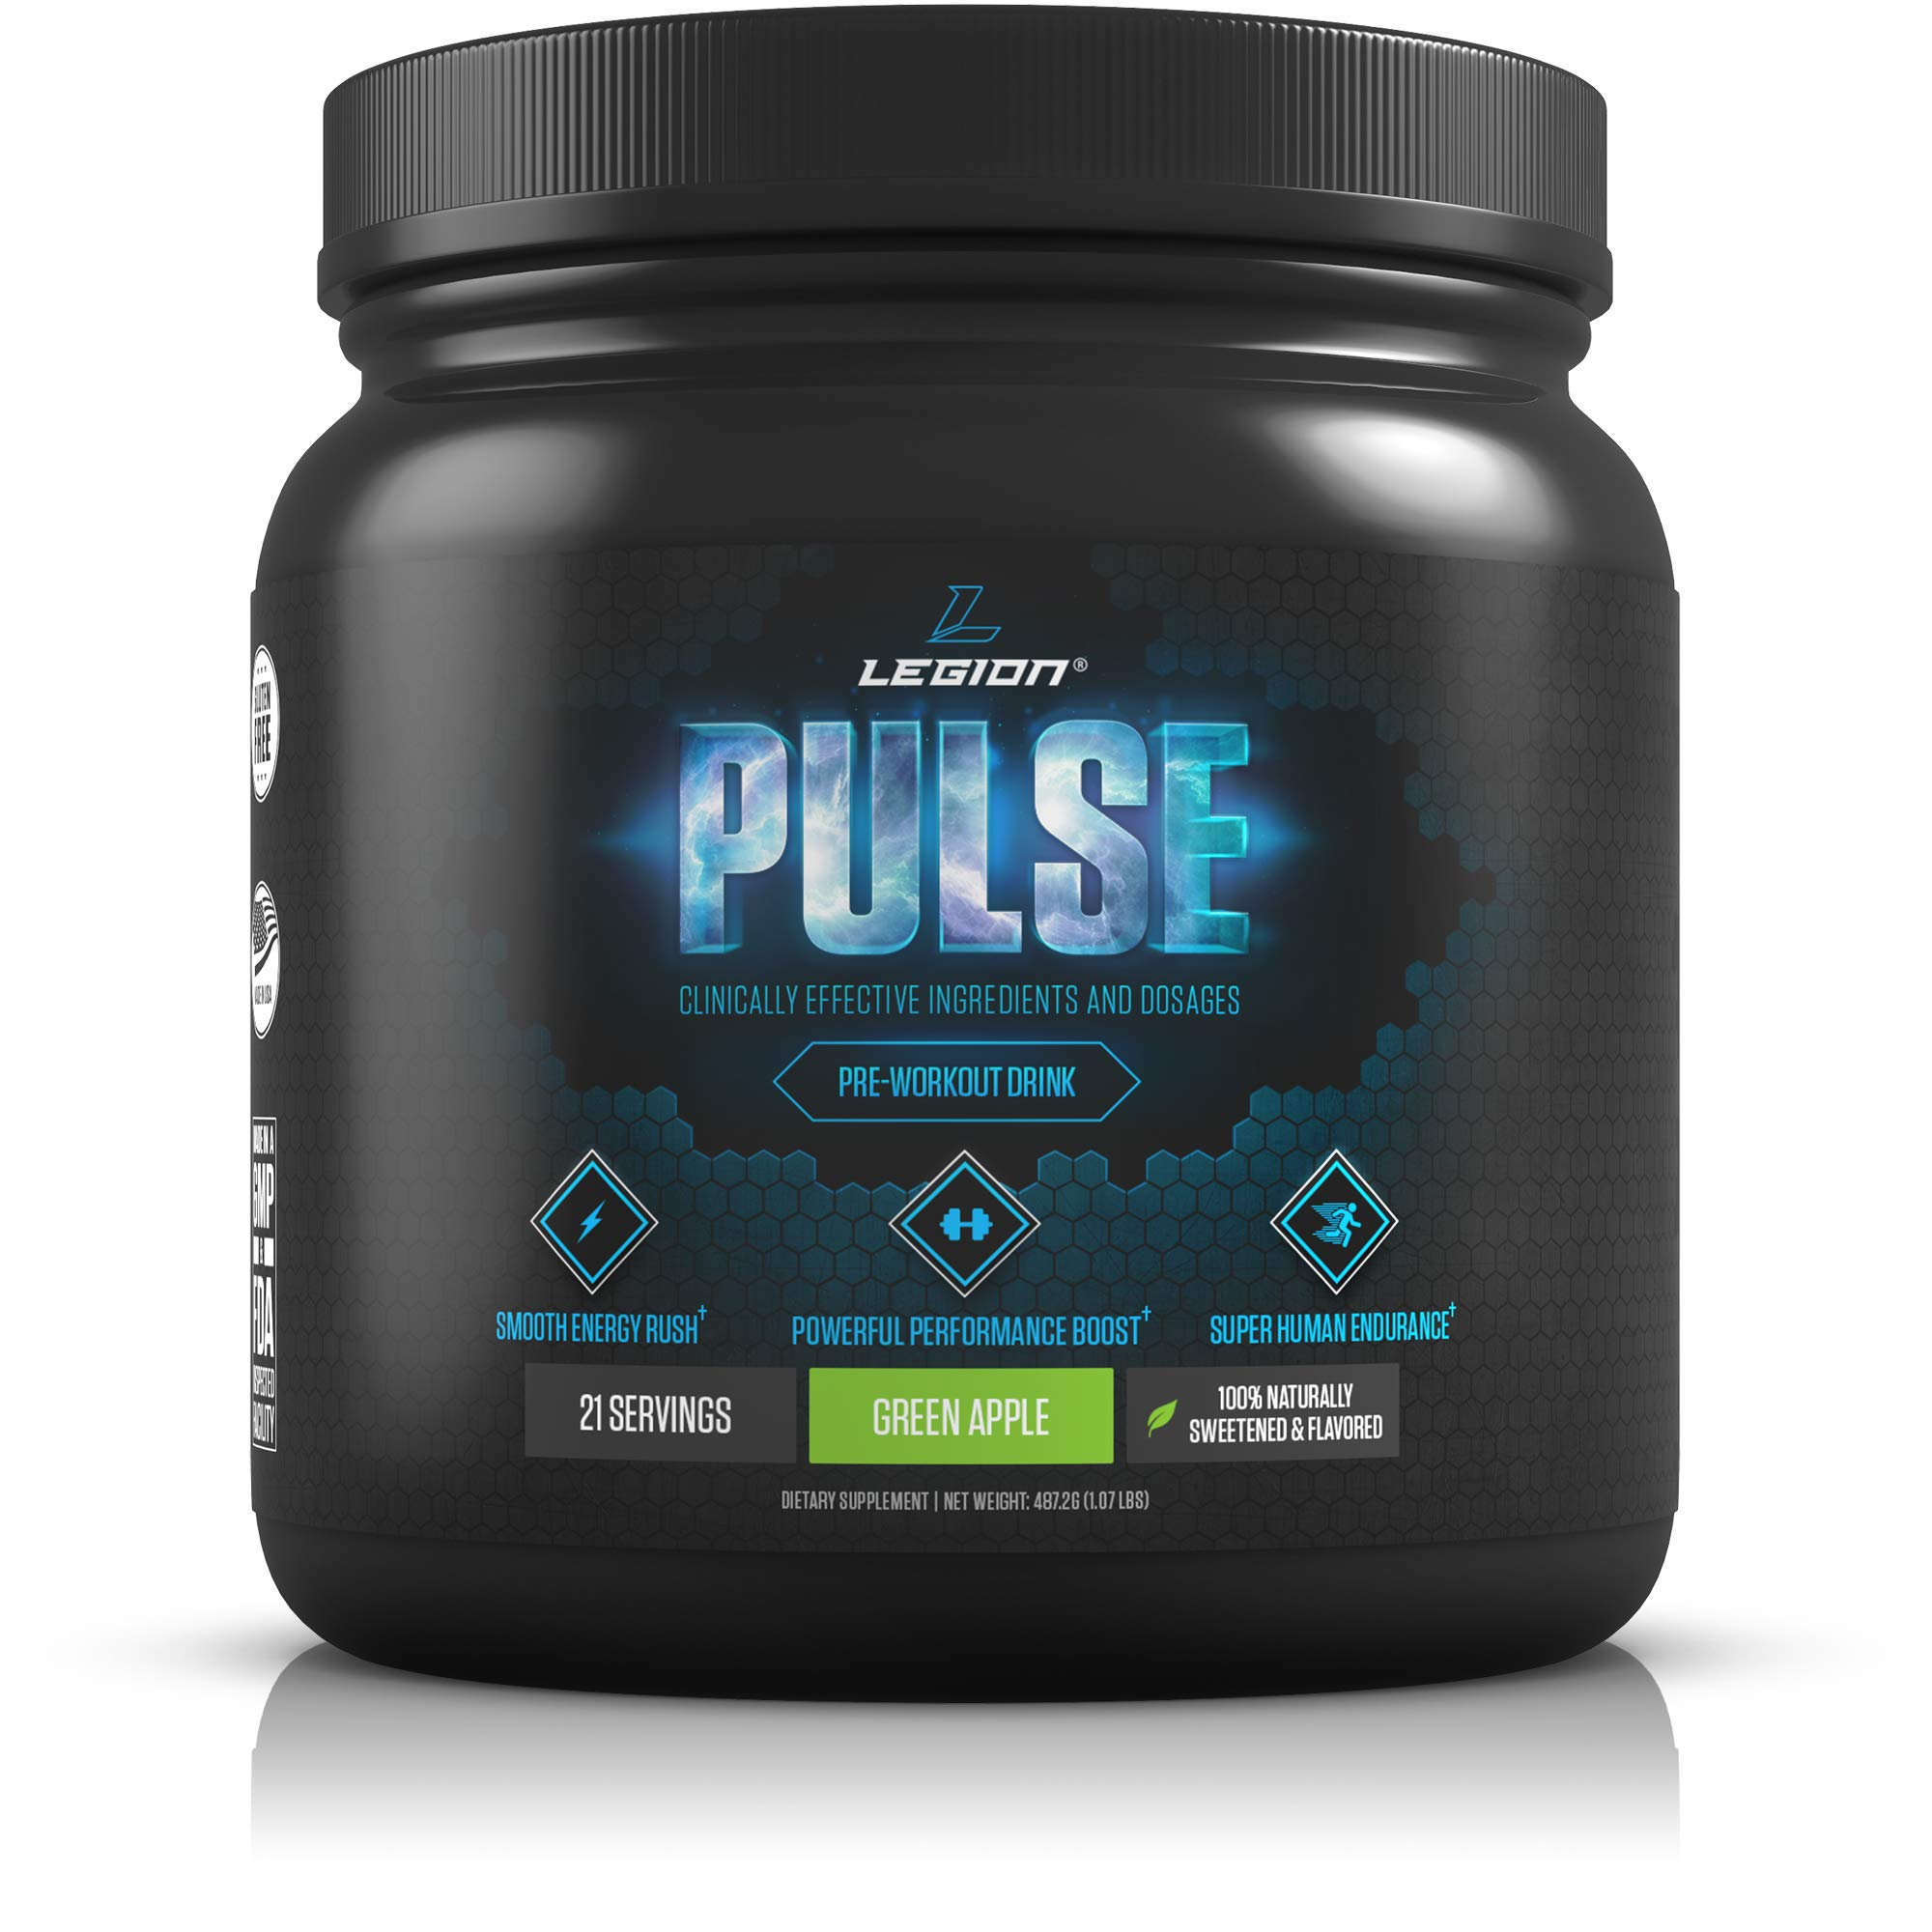 Legion Pulse Pre Workout Supplement - All Natural Nitric Oxide Preworkout Drink to Boost Energy & Endurance. Creatine Free, Naturally Sweetened & Flavored, Safe & Healthy. Green Apple, 21 Servings. by Legion Athletics